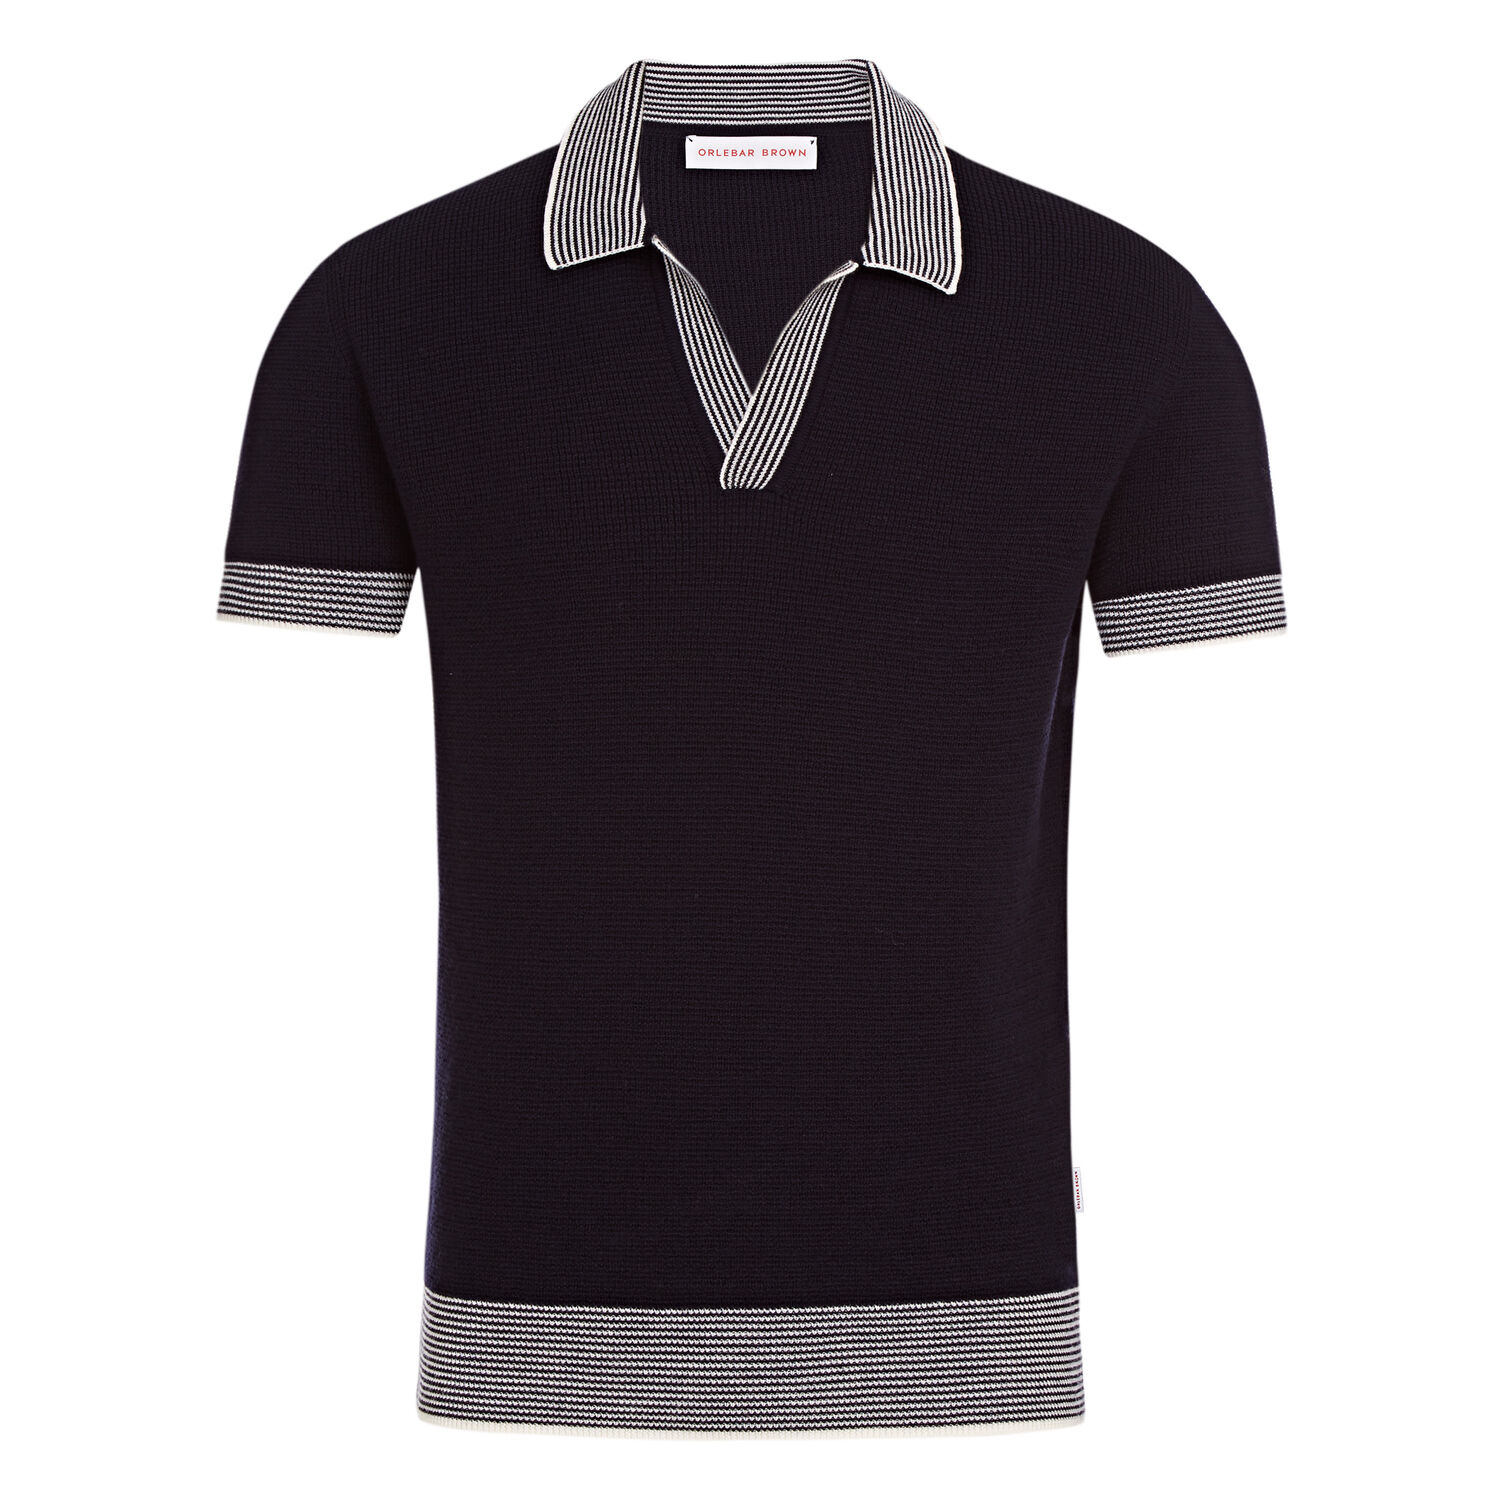 Orlebar Brown polo - £295 - Perfect all day wear for holidays